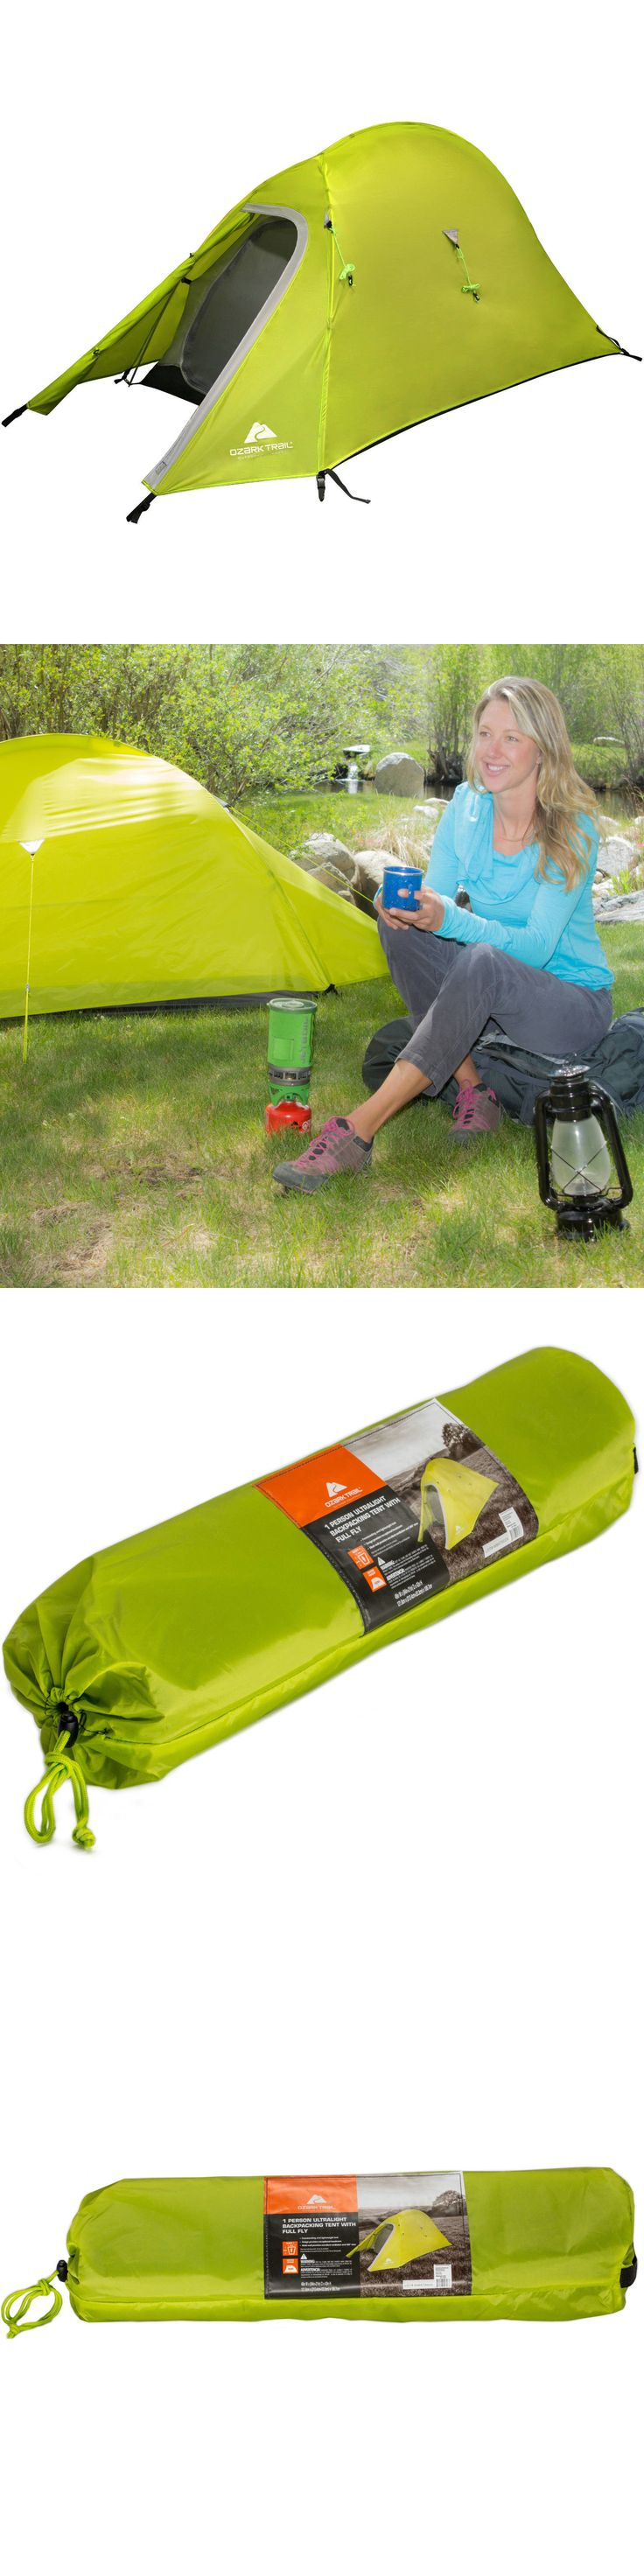 Tents 179010: Ultra Light Back Packing Tent 4 X 7 X 42 Full Fly Sleeps 1 Green Durable New -> BUY IT NOW ONLY: $42.58 on eBay!